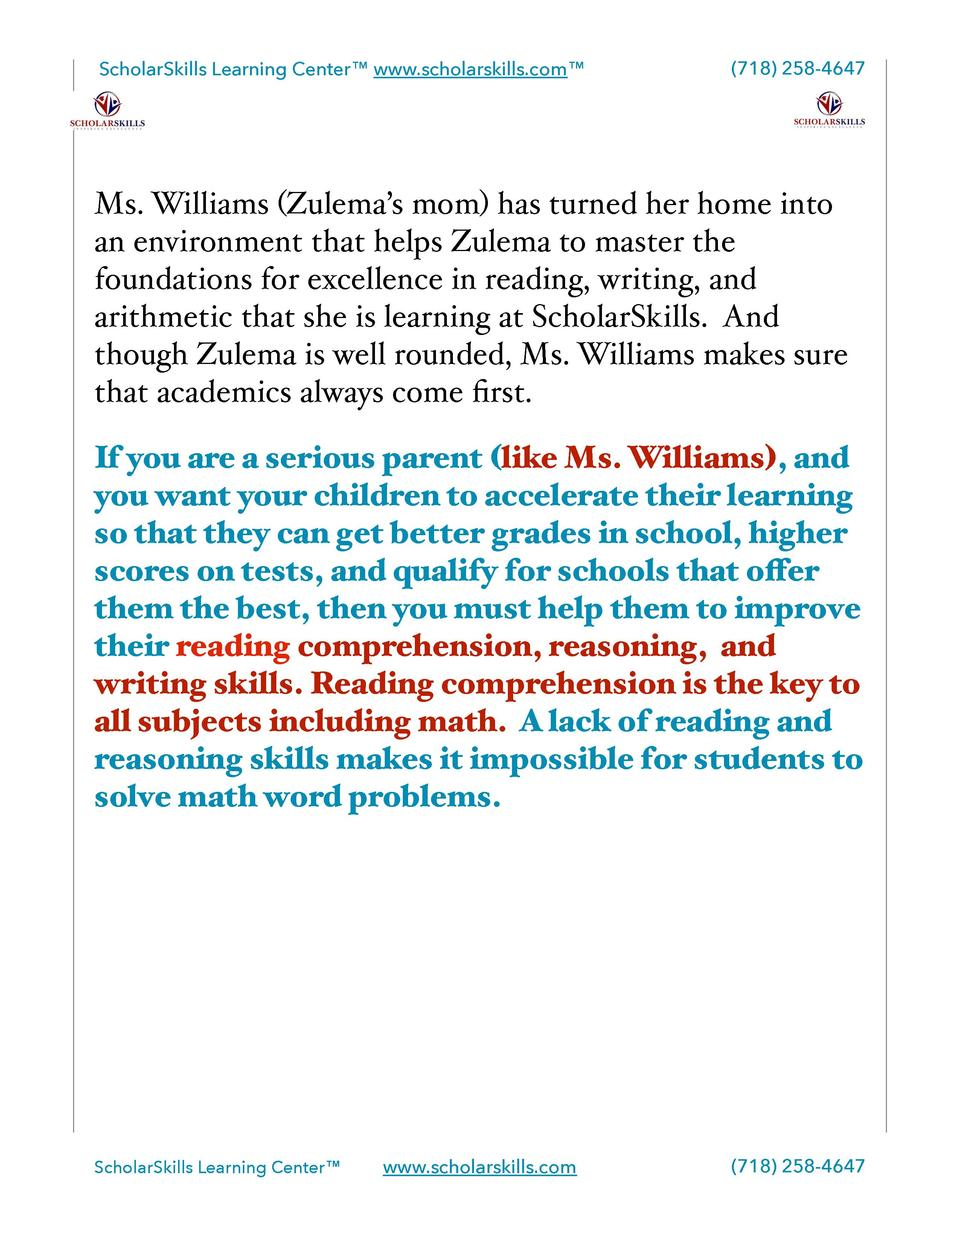 ScholarSkills Learning Center    www.scholarskills.com      718  258-4647  Ms. Williams  Zulema   s mom  has turned her ho...